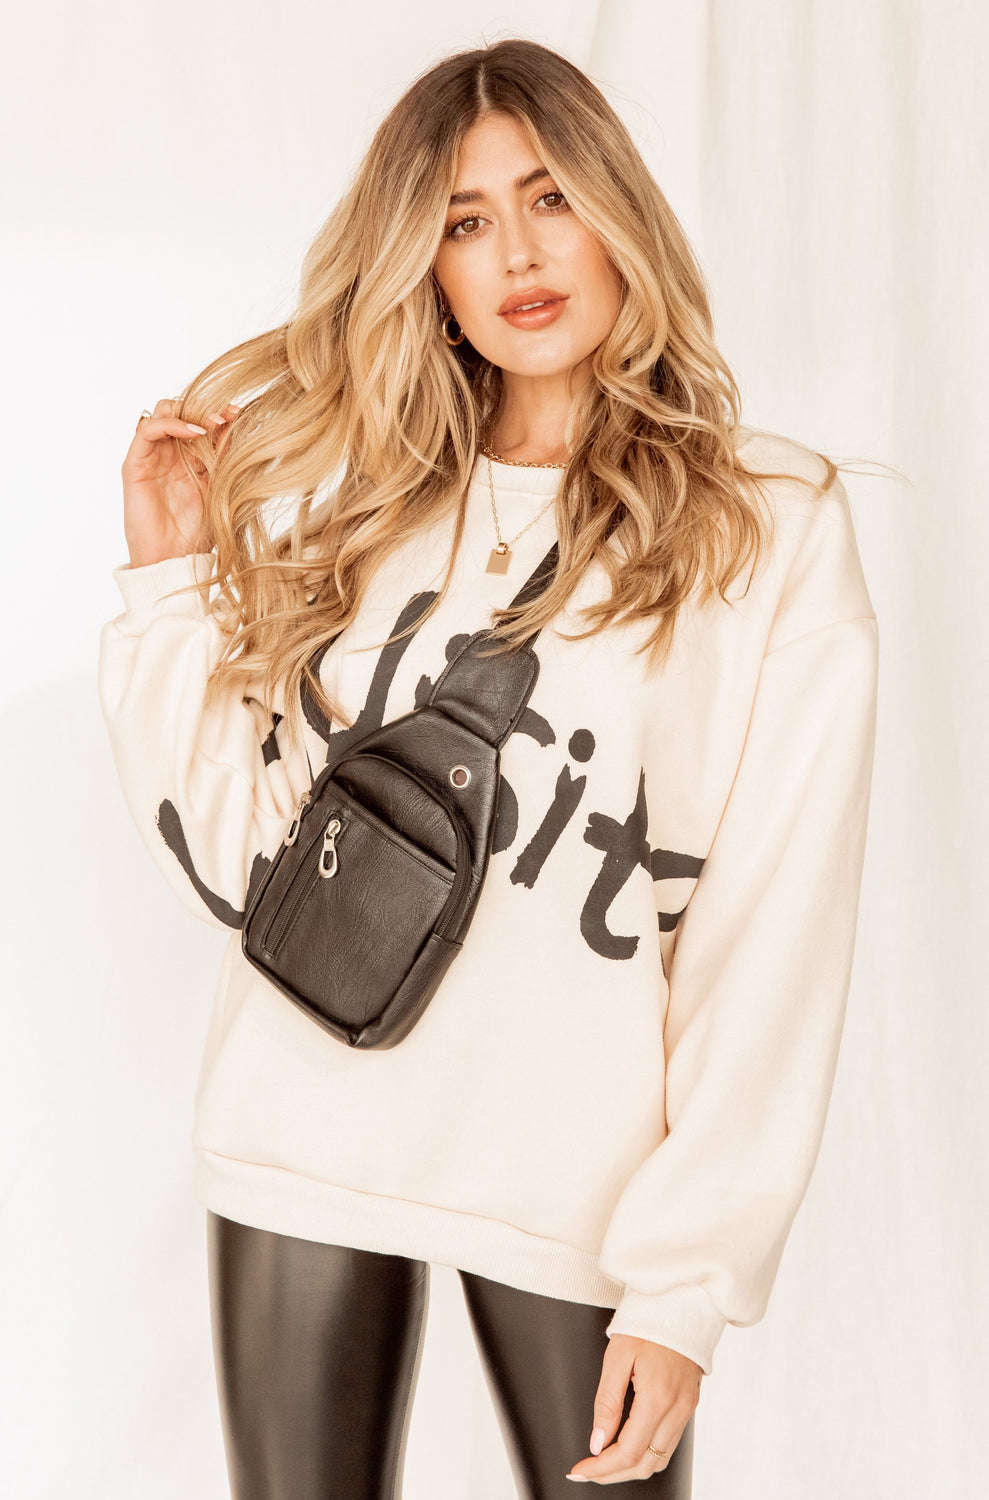 The Exquisite Ivory Crewneck Sweatshirt